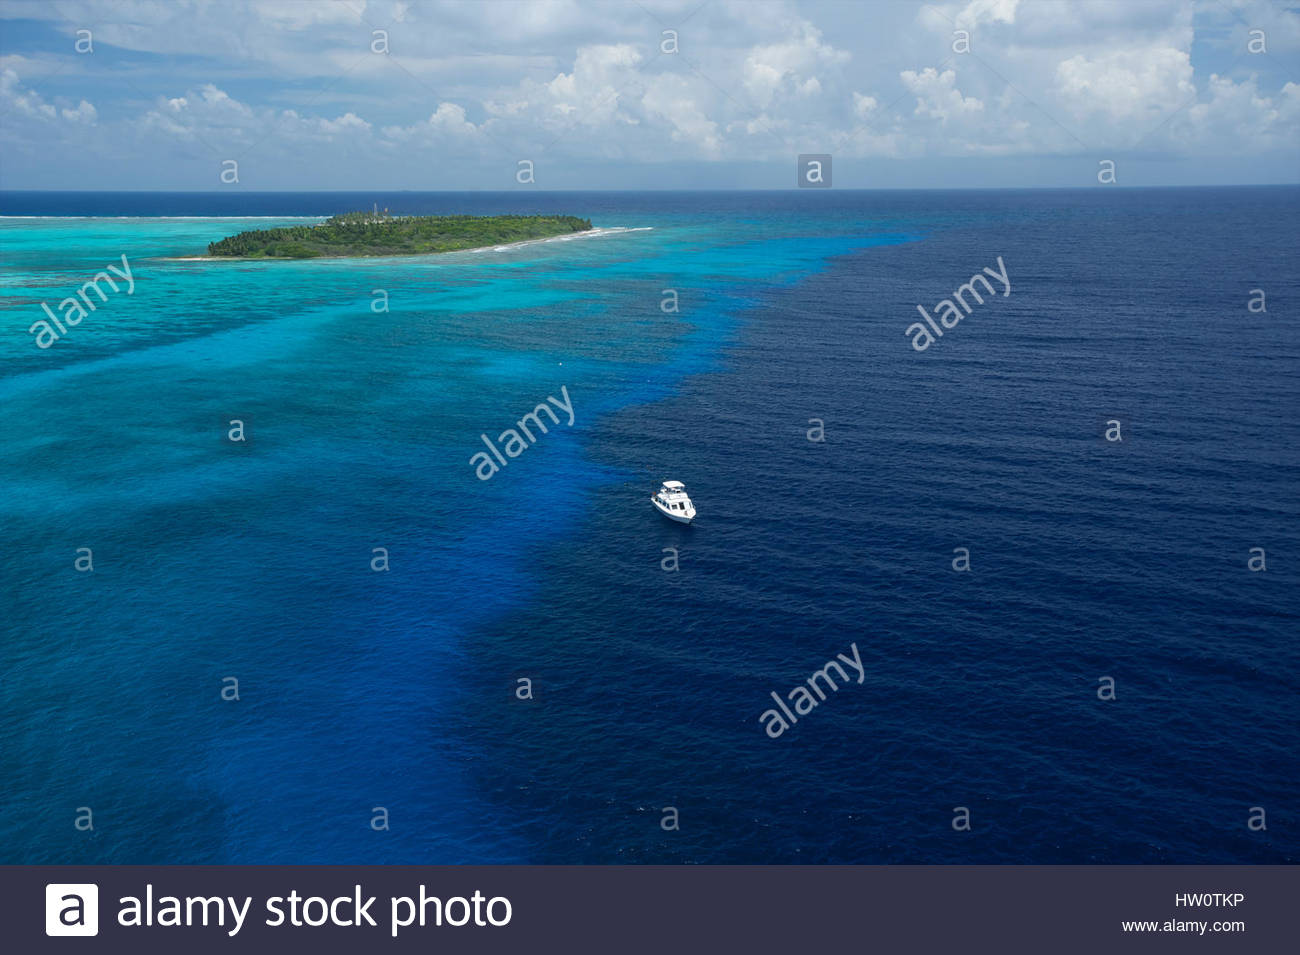 The barrier reef at Half Moon Caye Natural Monument in the middle of the 160-mile MesoAmerican Barrier Reef, the - Stock Image